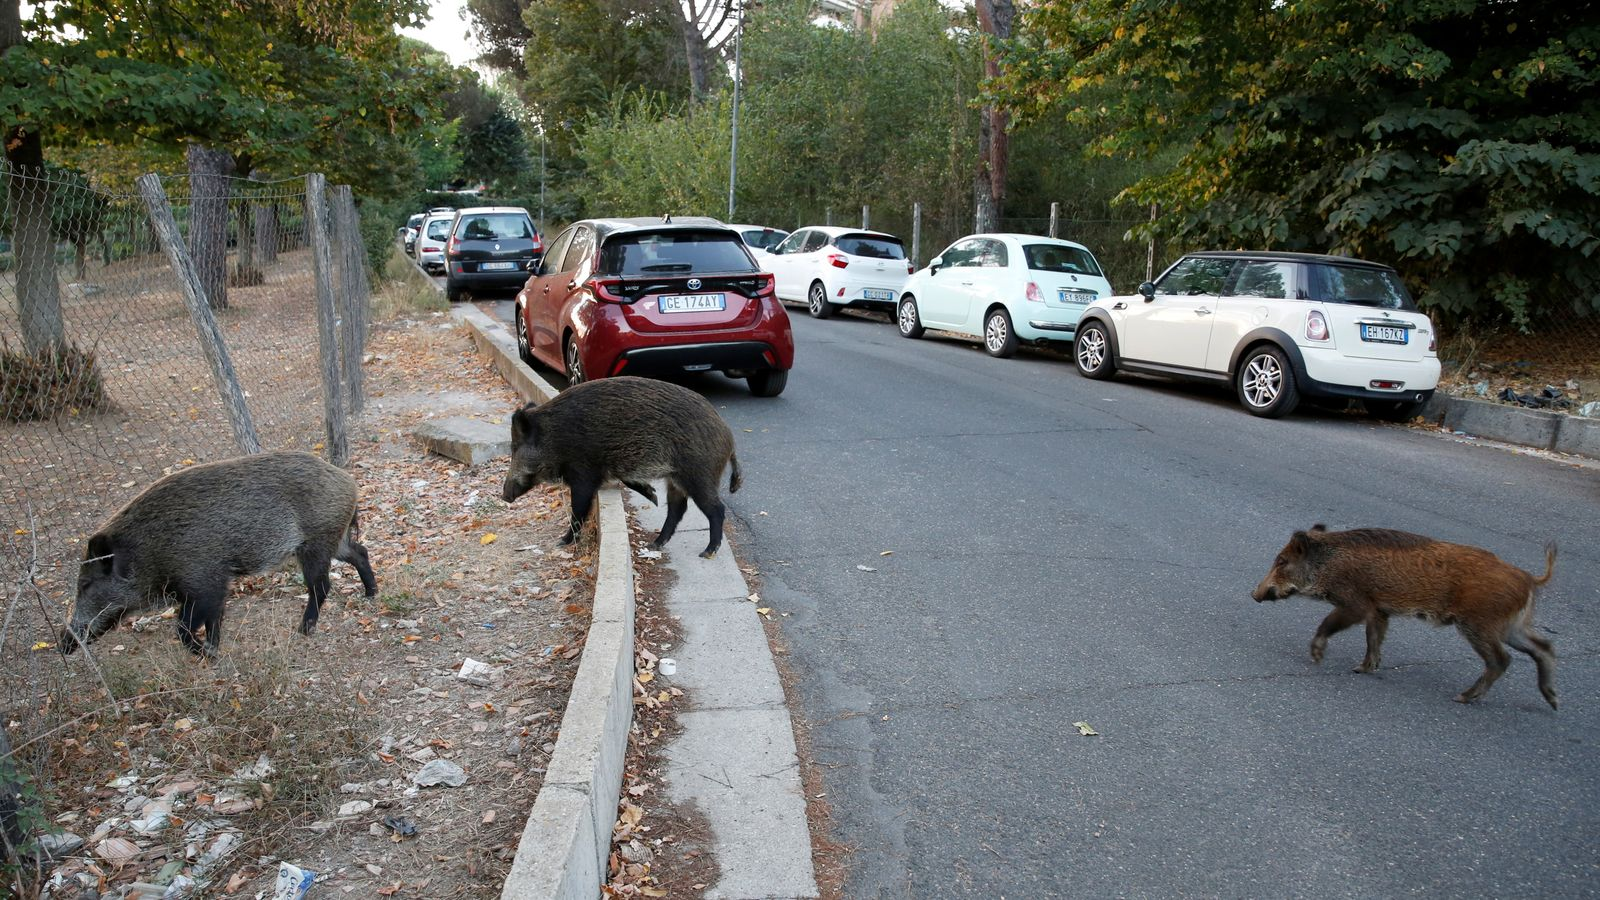 Rome: Brazen wild boar on streets of Italian capital becomes election campaign issue – as residents left 'scared'